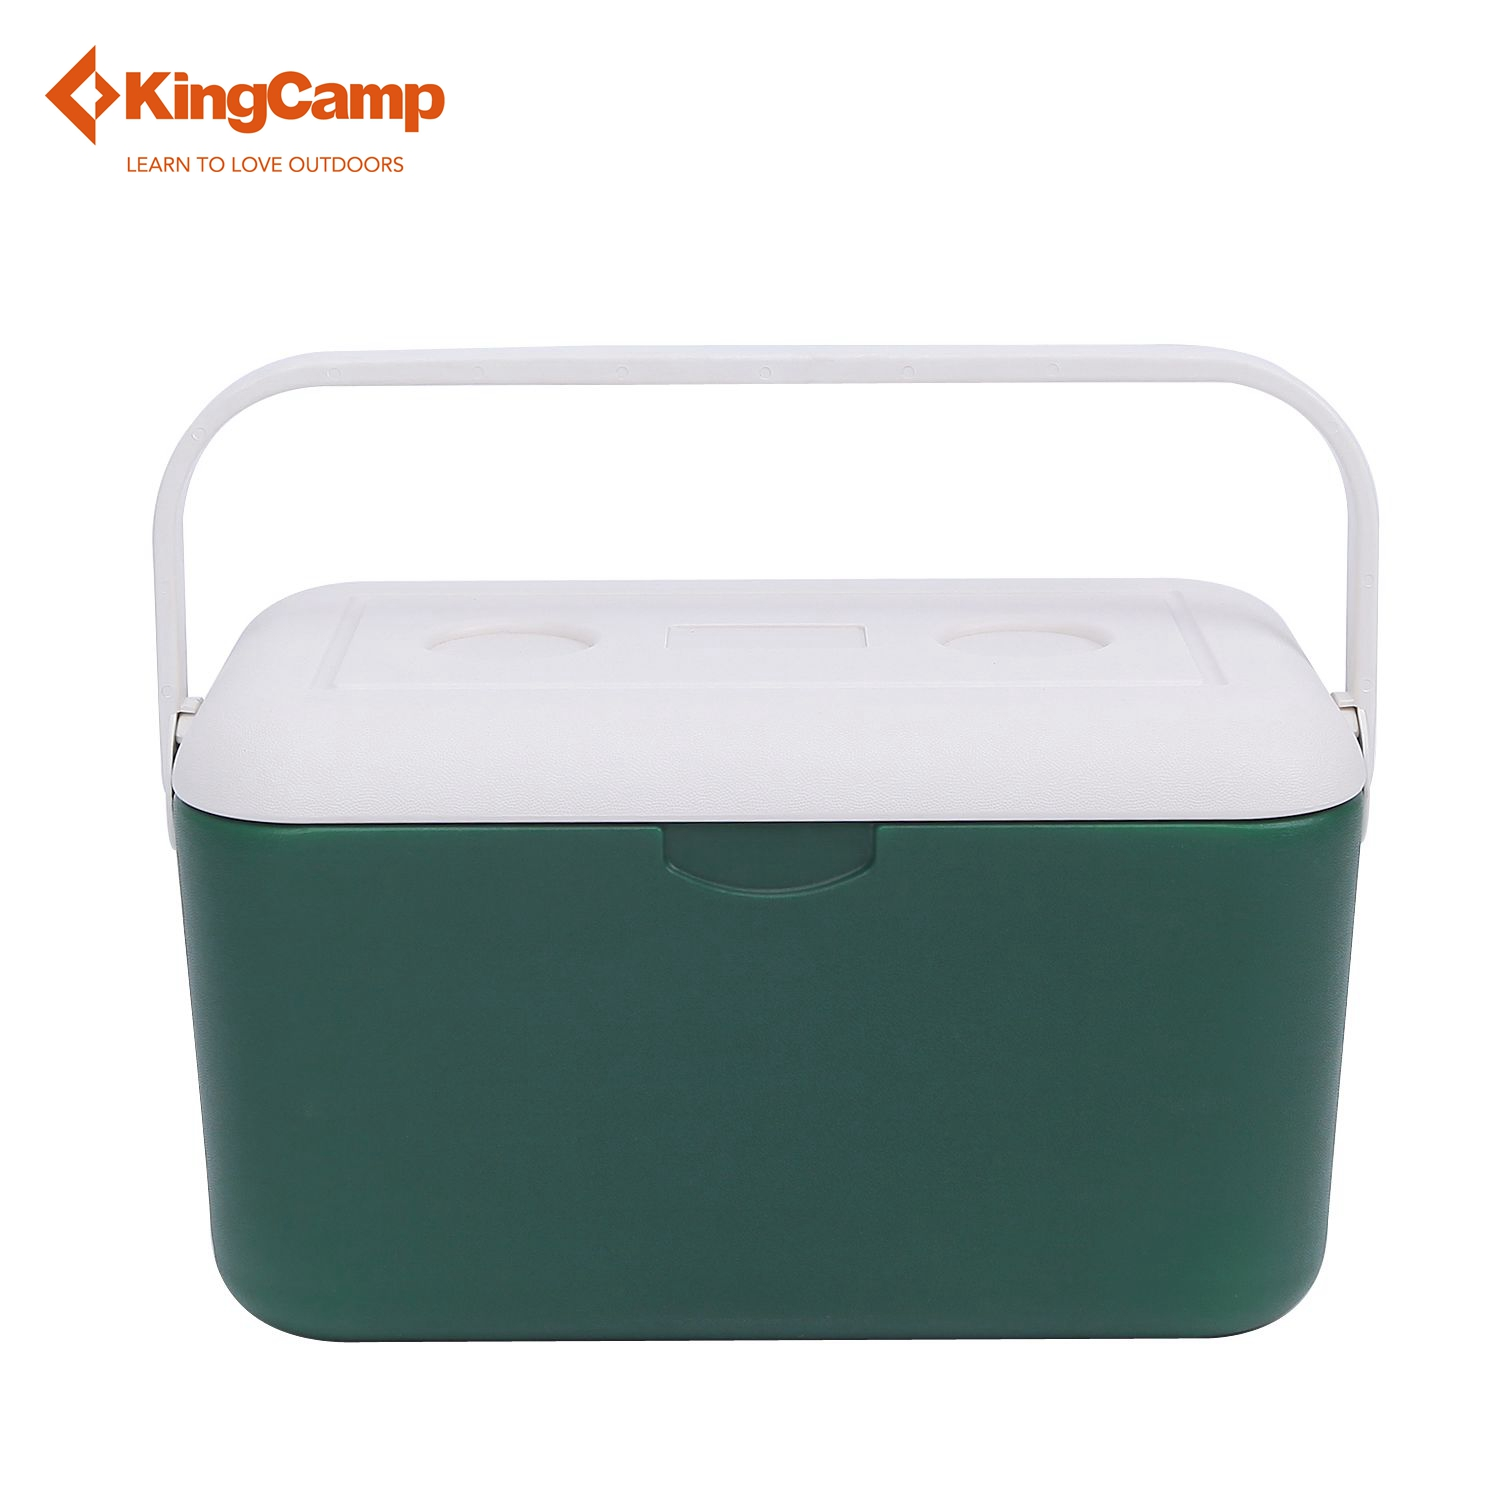 KingCamp 2016 Big Capacity 20L Portable Ultralight Travel Car Cooler Box for Outdoor Cooking Picnic Barbecue Camping Food<br><br>Aliexpress